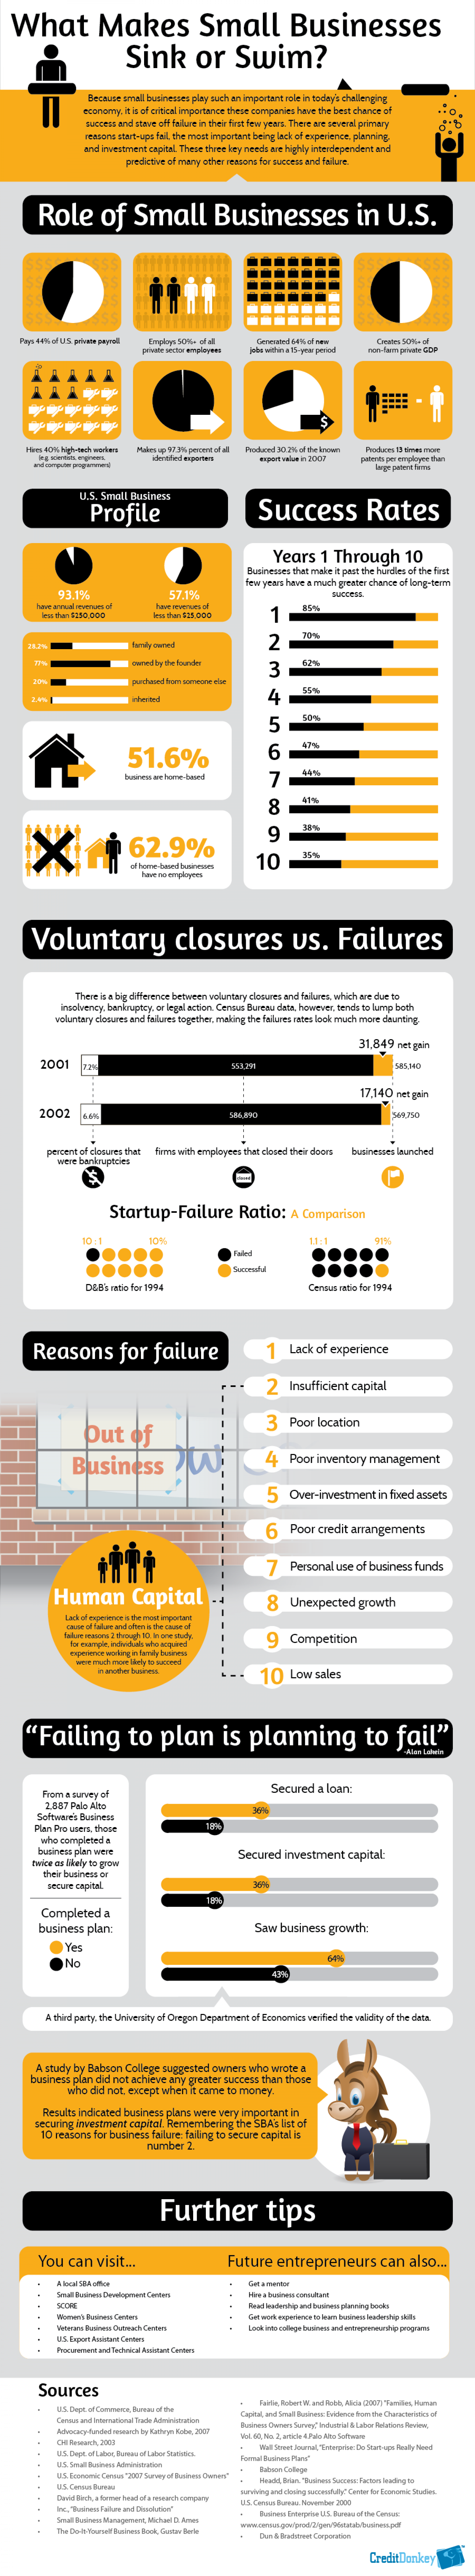 What Makes Small Businesses Sink or Swim? Infographic